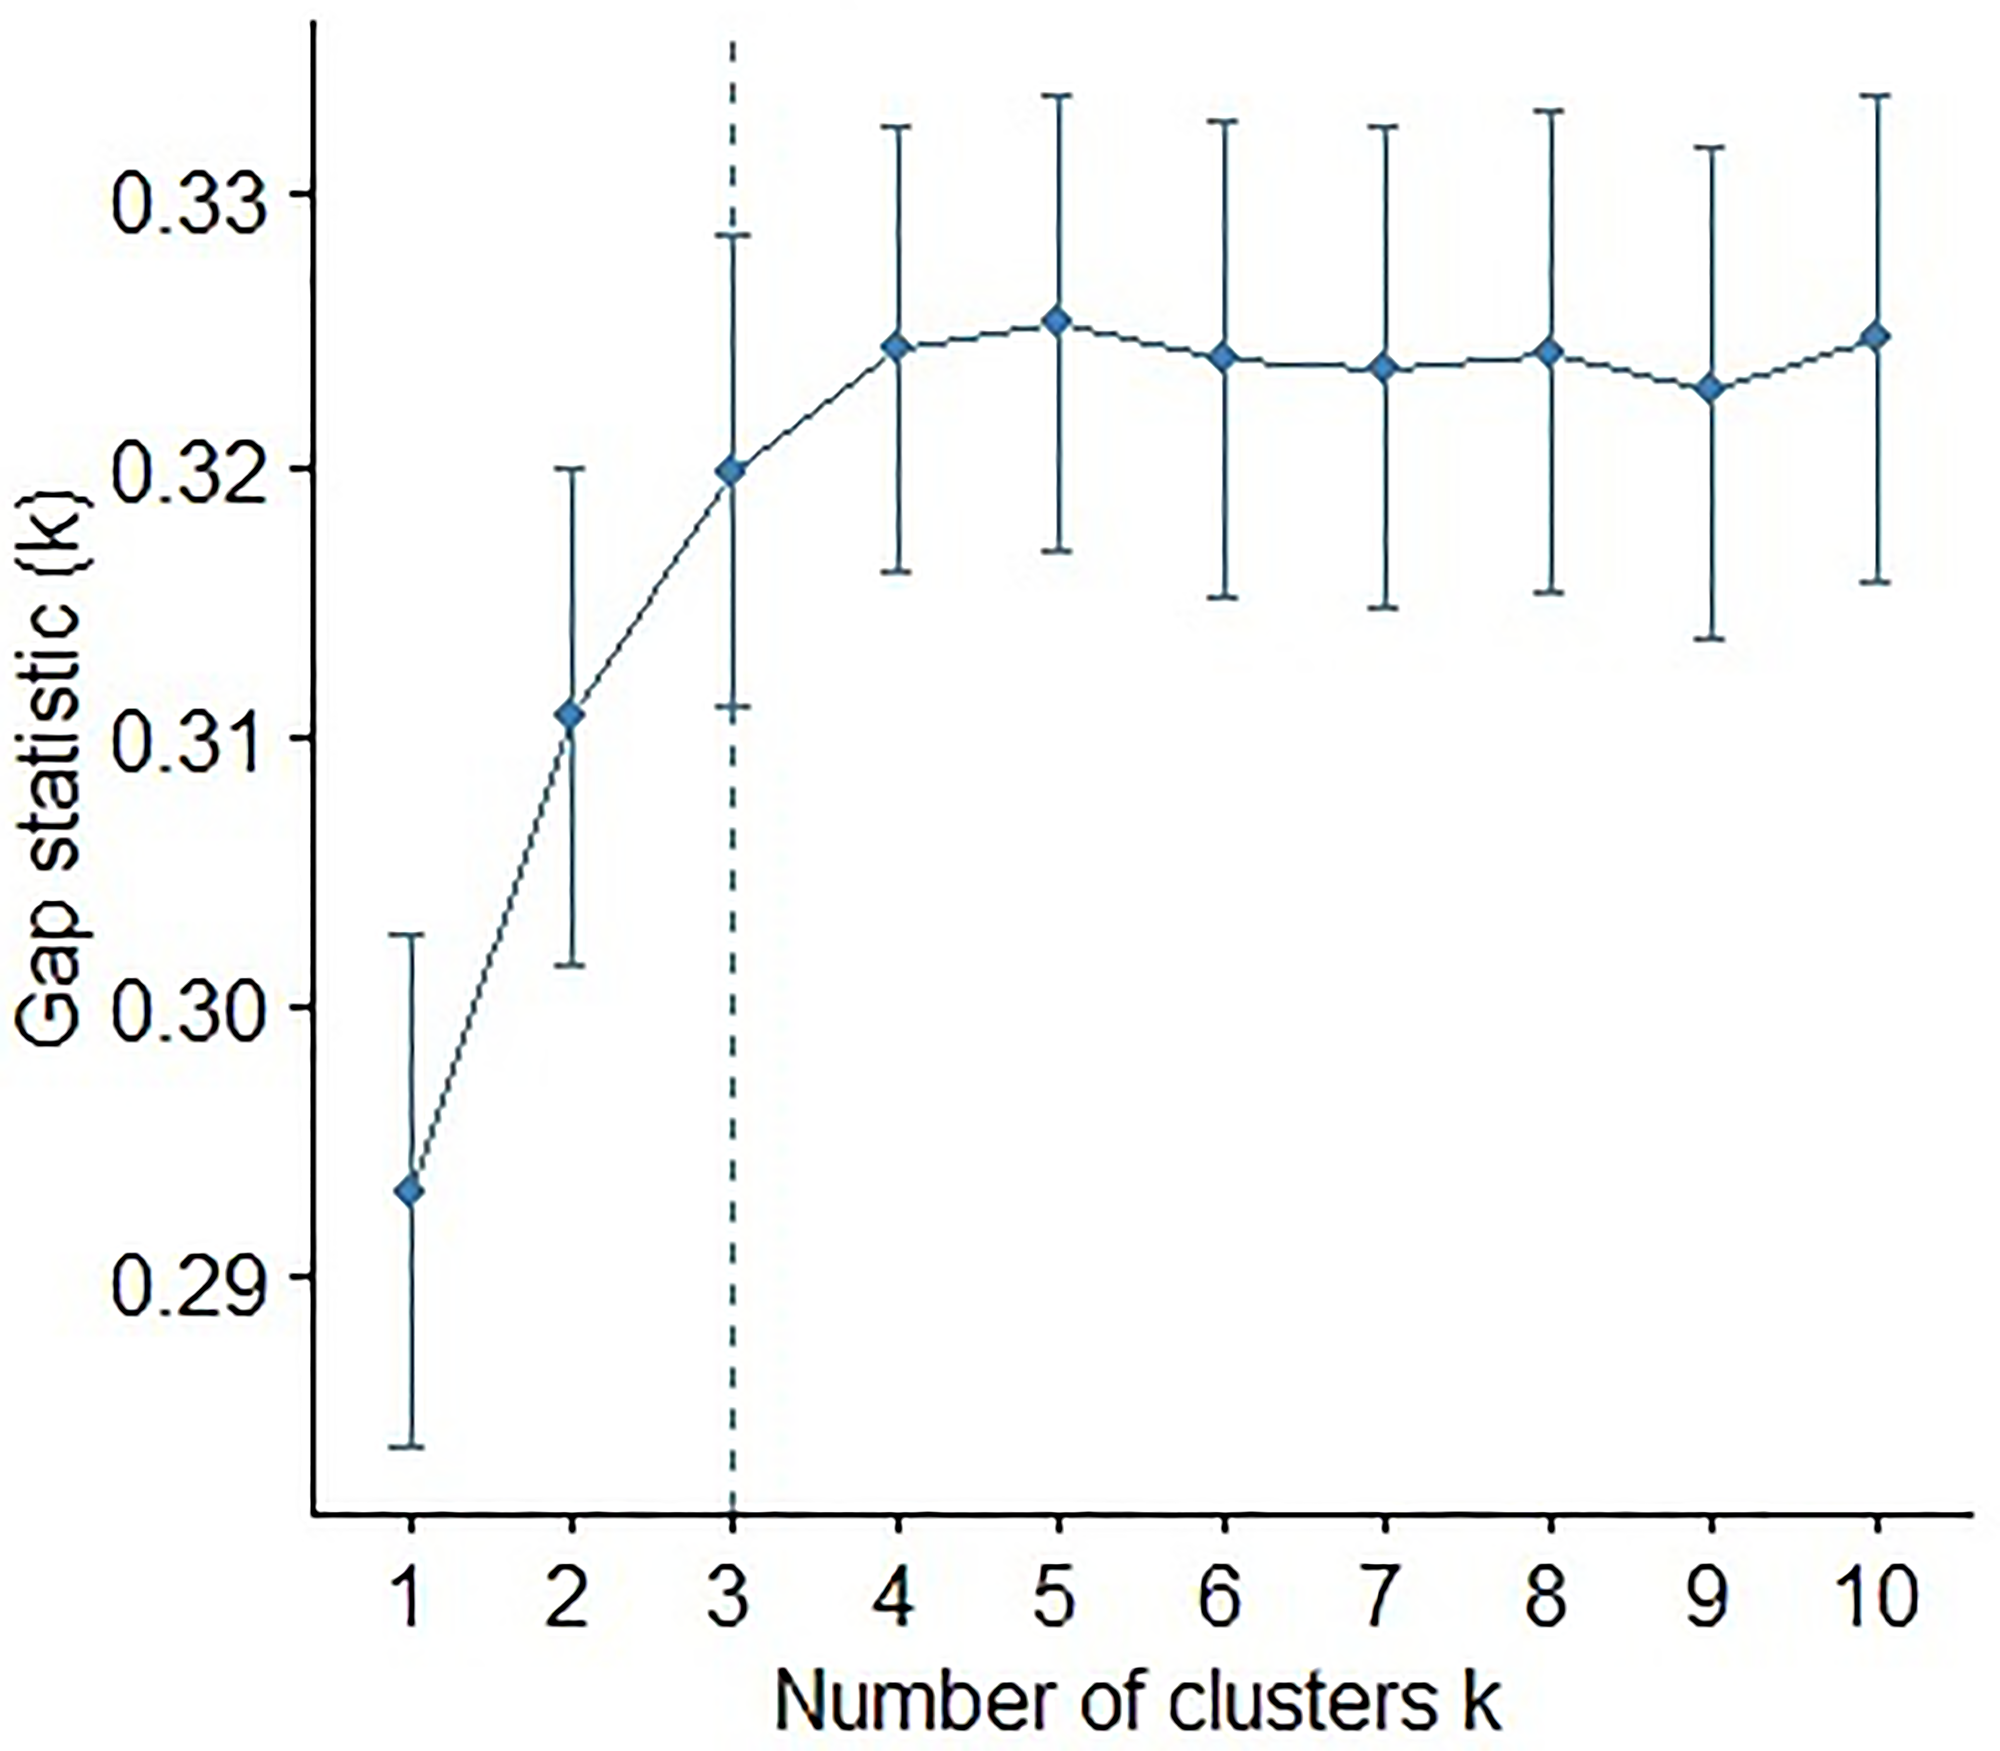 Plot of the gap statistic against the number of clusters in an unsupervised k-means clustering of the miRNAs.